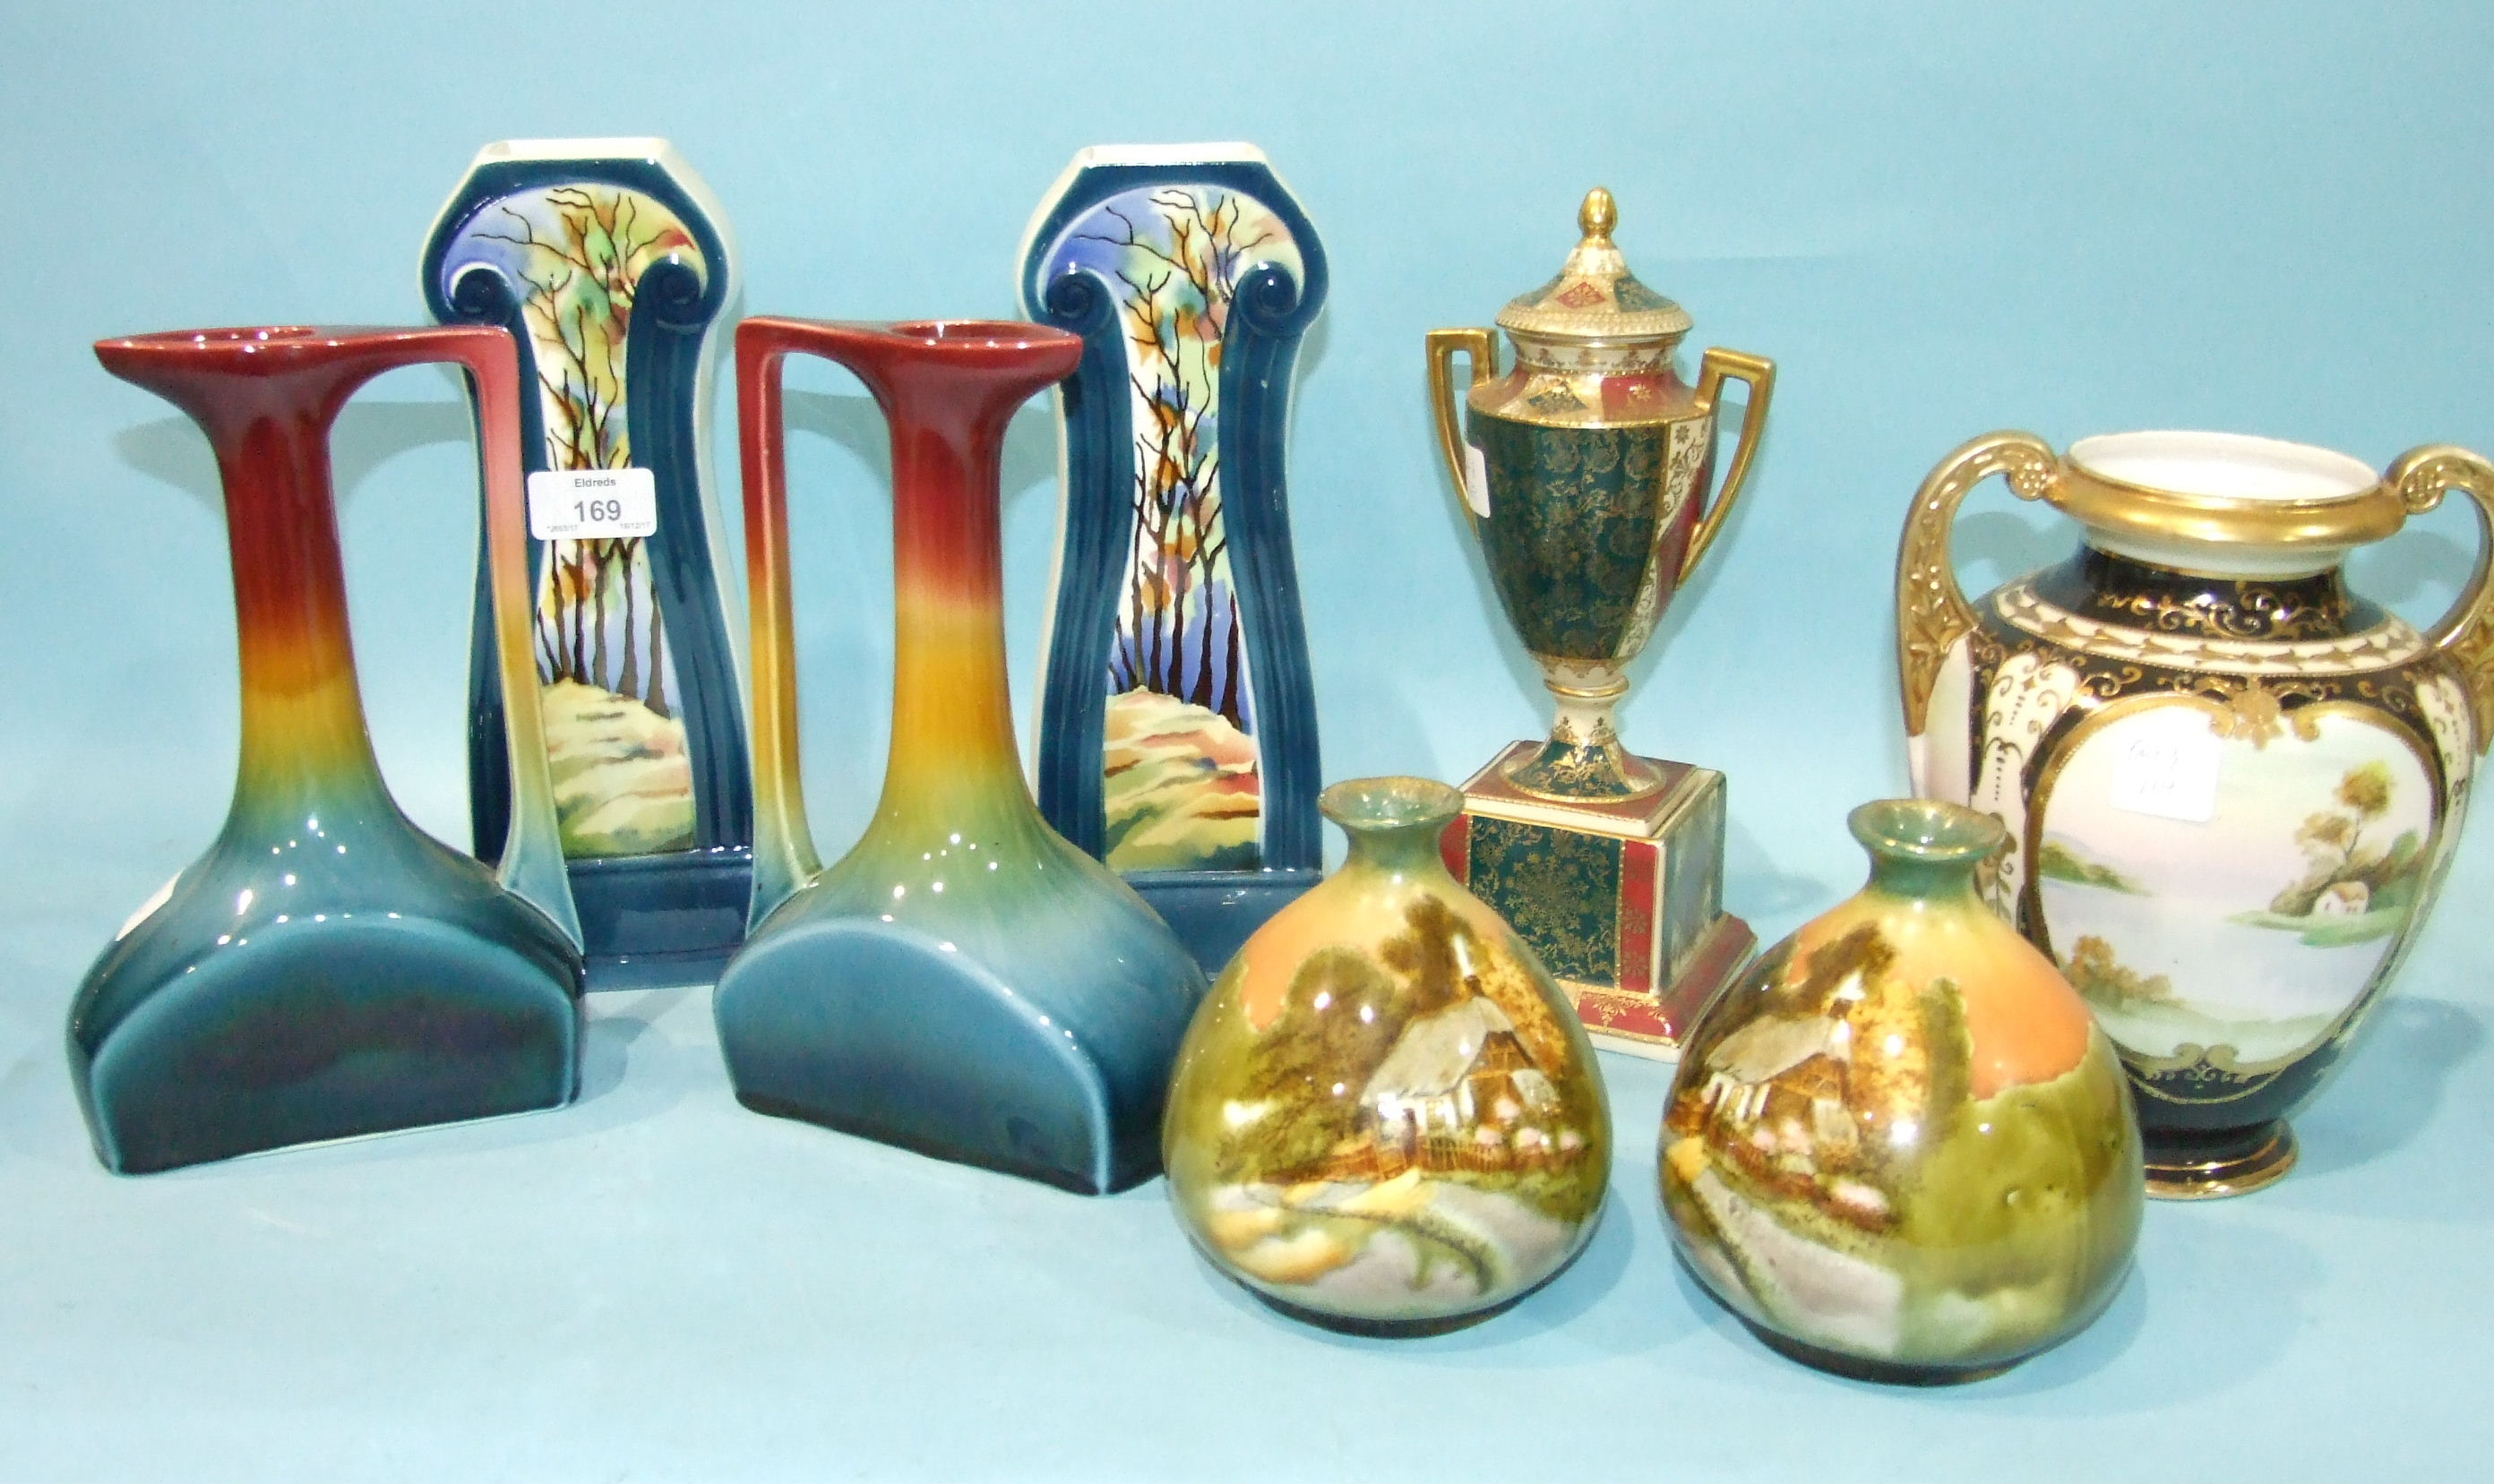 Lot 169 - A pair of Continental ceramic Art Nouveau-style vases painted with a woodland design, 27cm high, (